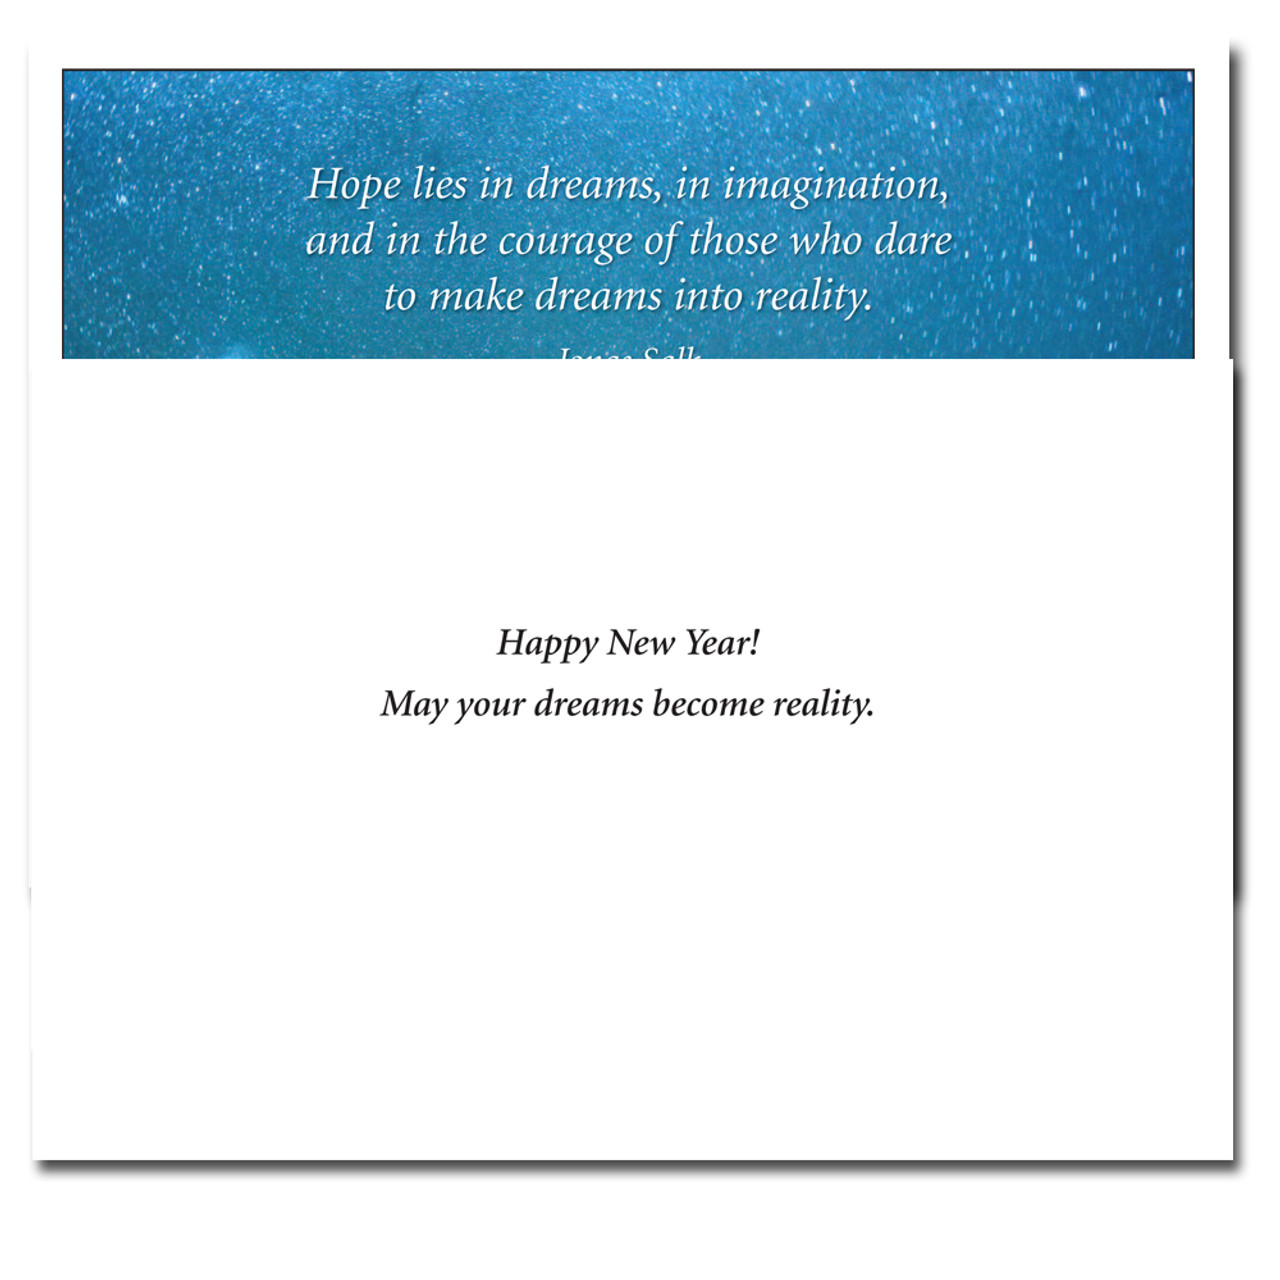 Inside of Beacon New Year Card reads: Happy New Year! May your dreams become reality.